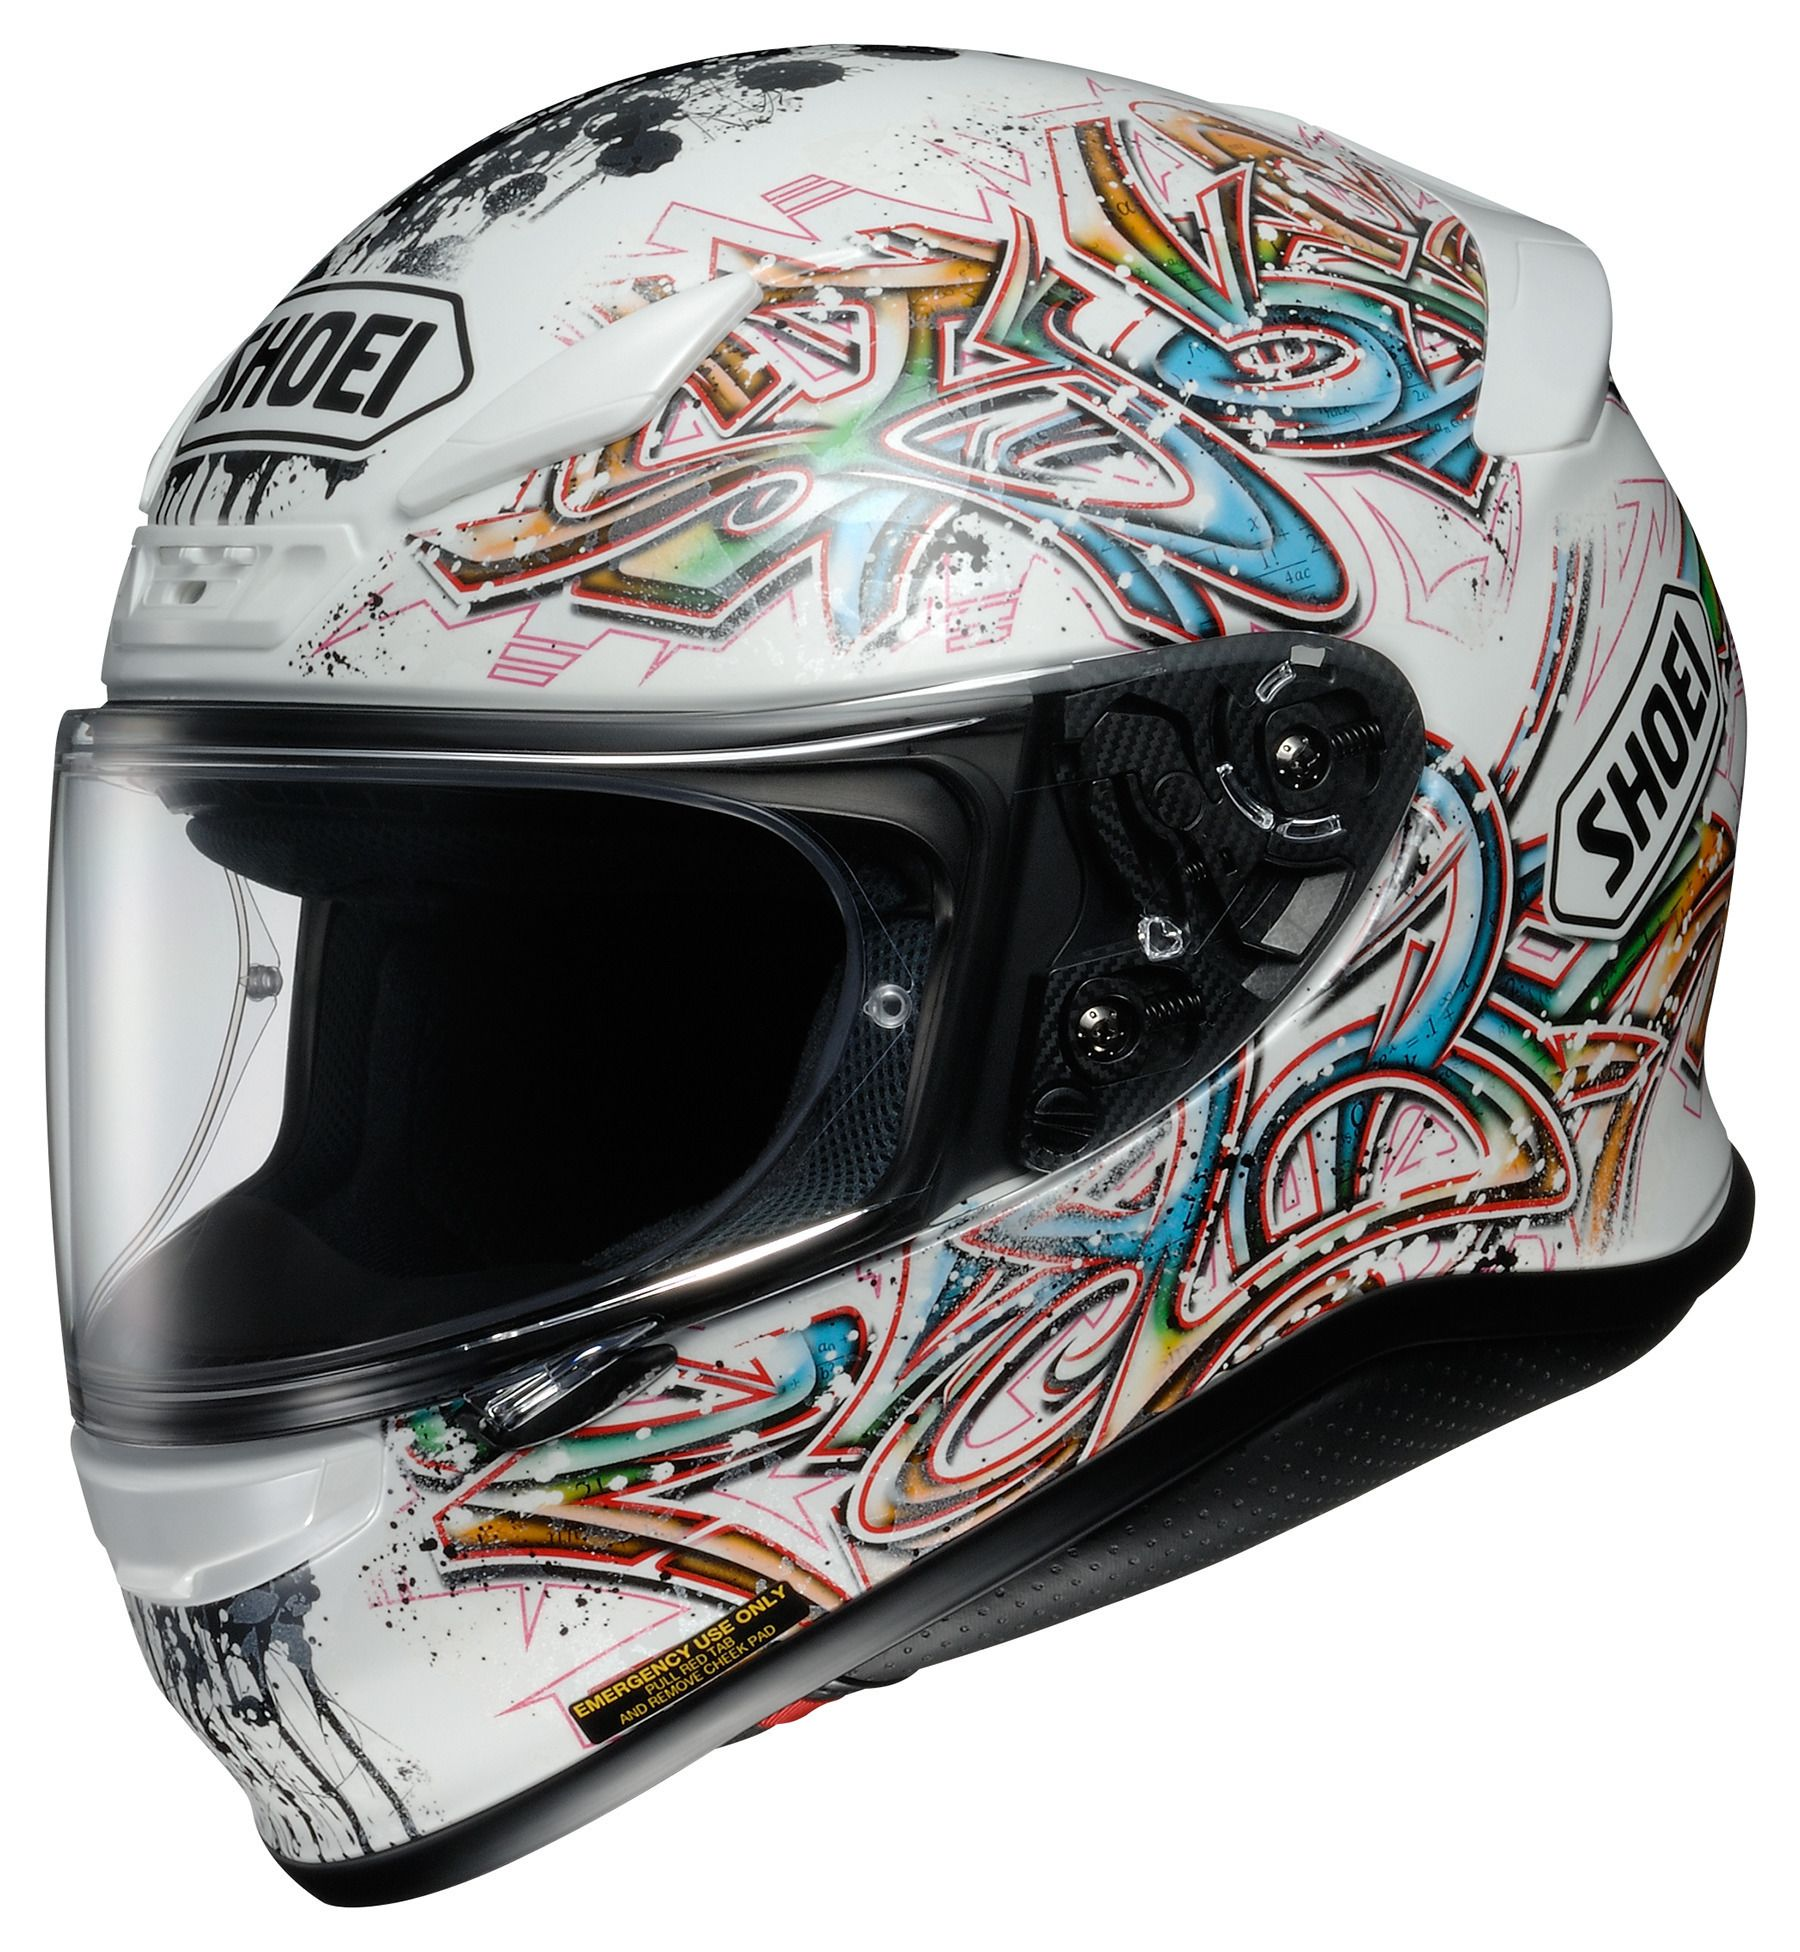 shoei rf 1200 graffiti helmet 24 off revzilla. Black Bedroom Furniture Sets. Home Design Ideas